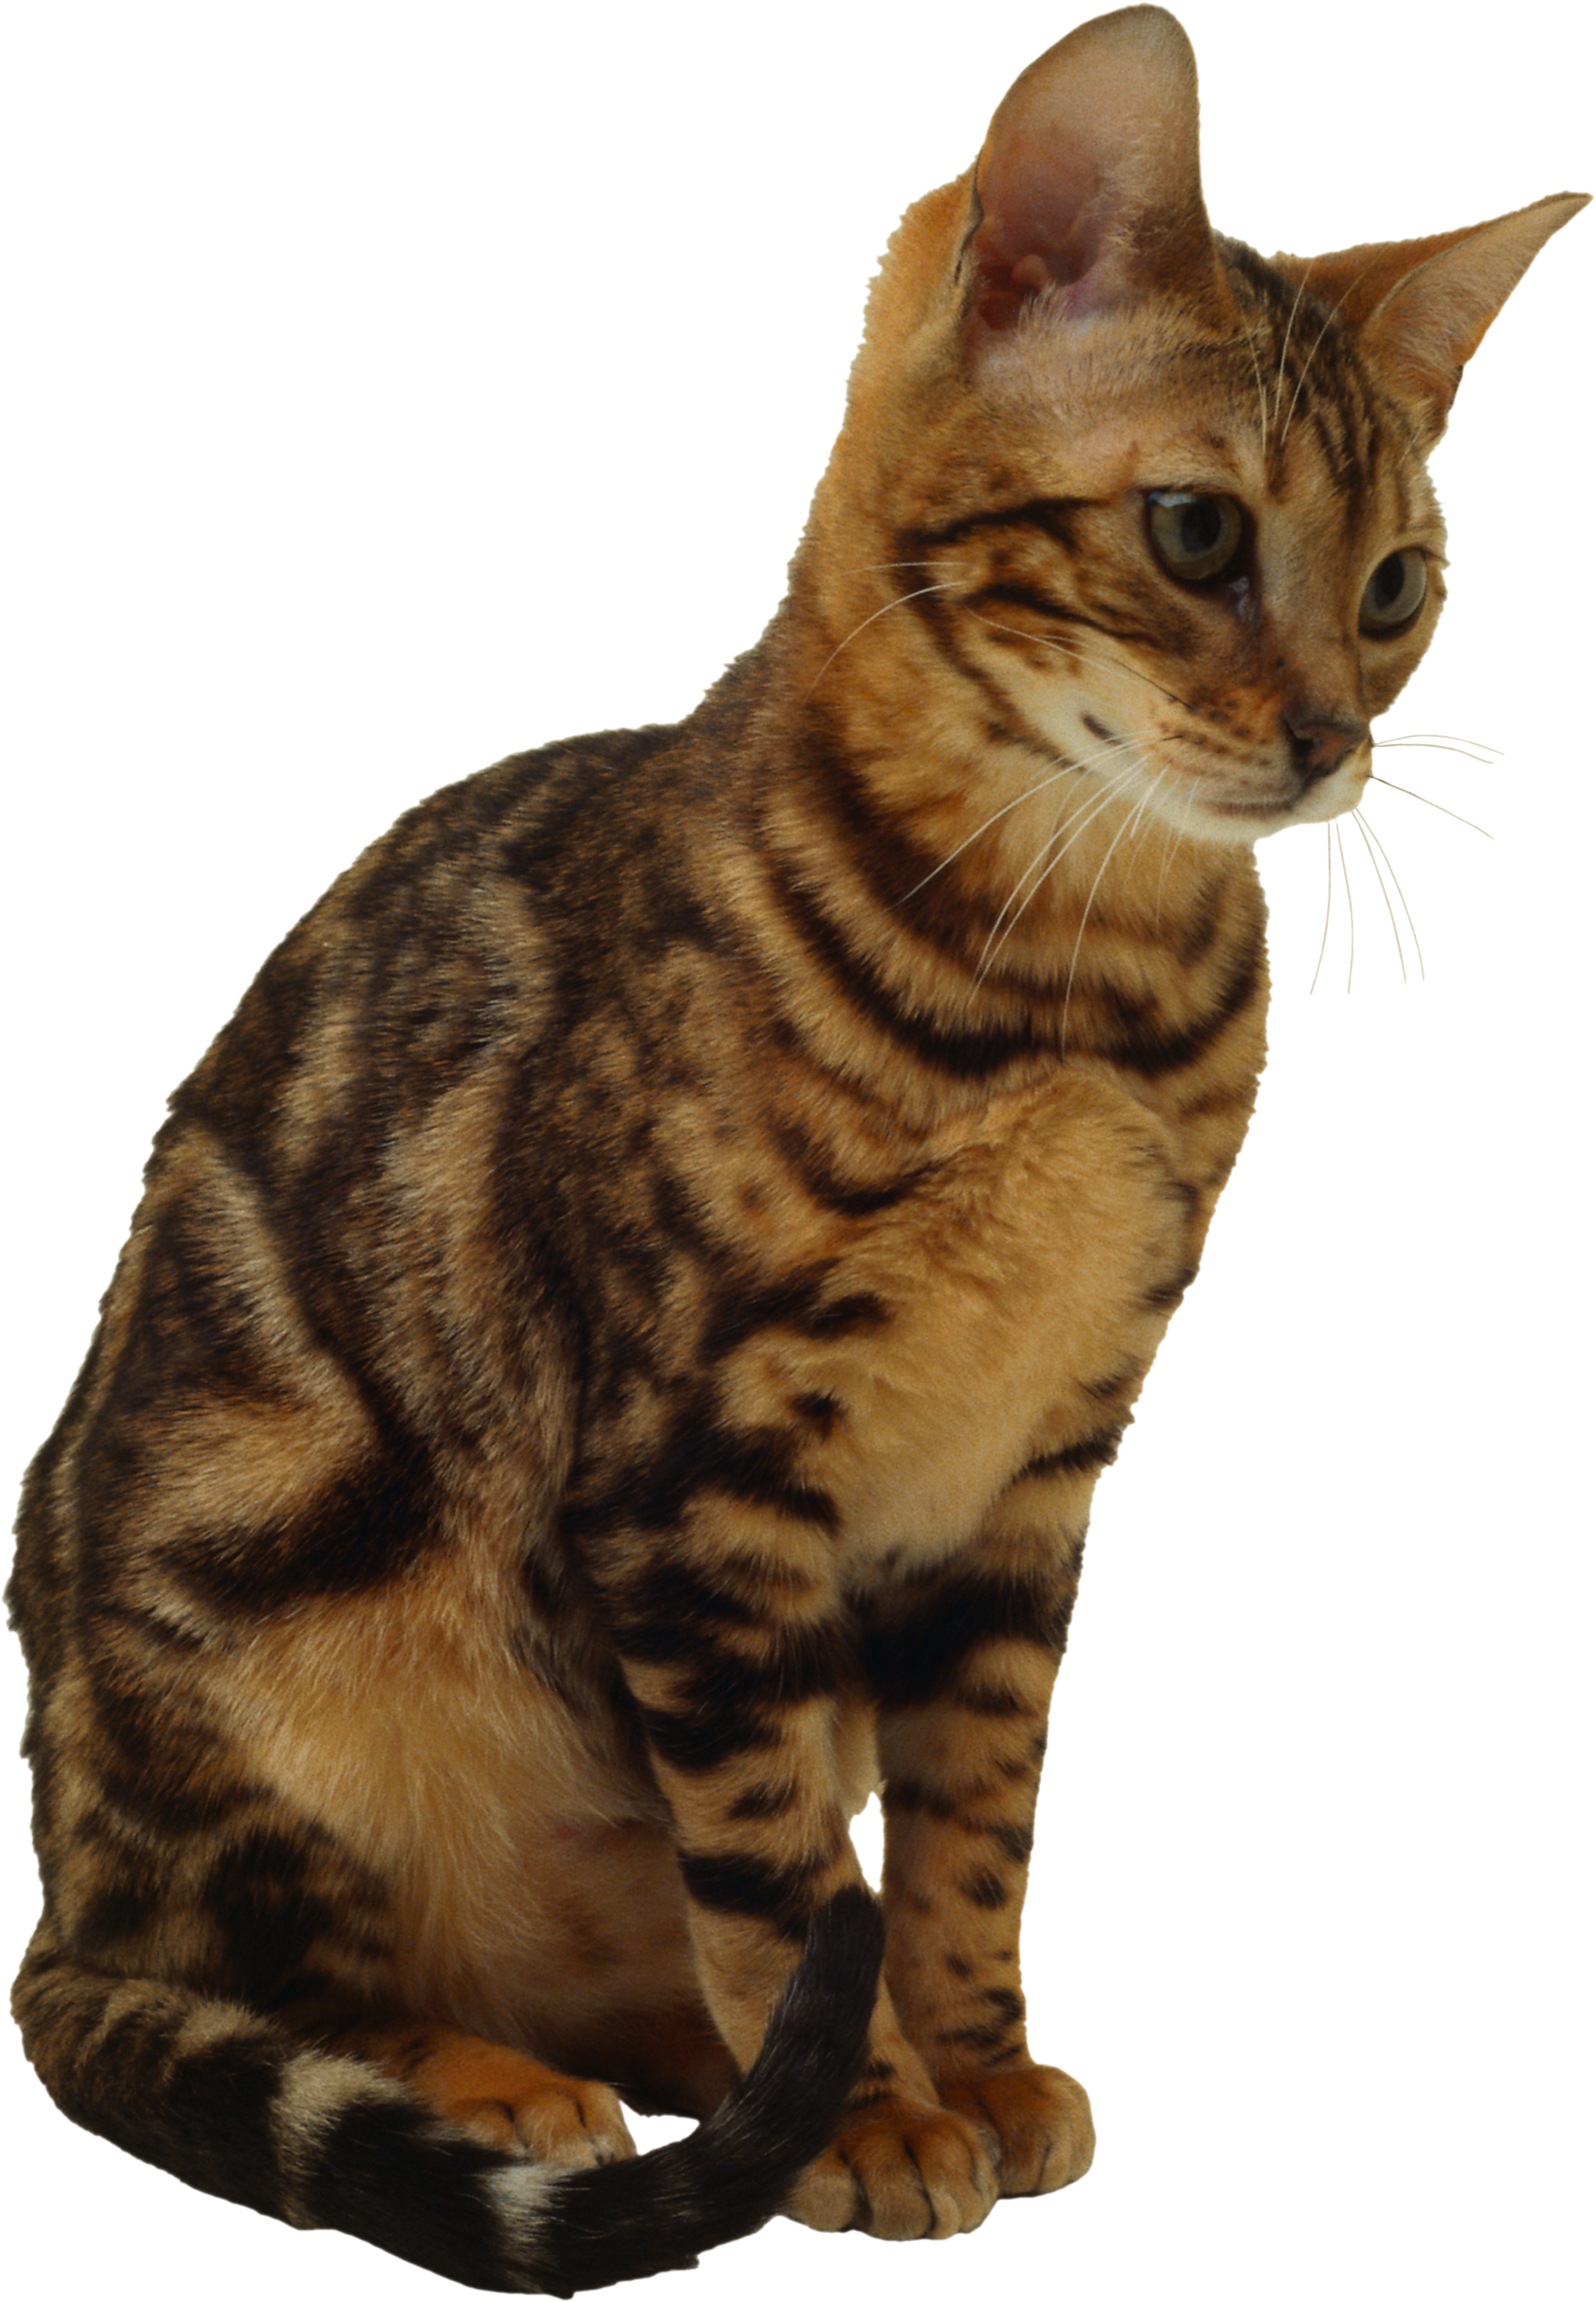 Download and use Cats PNG Image